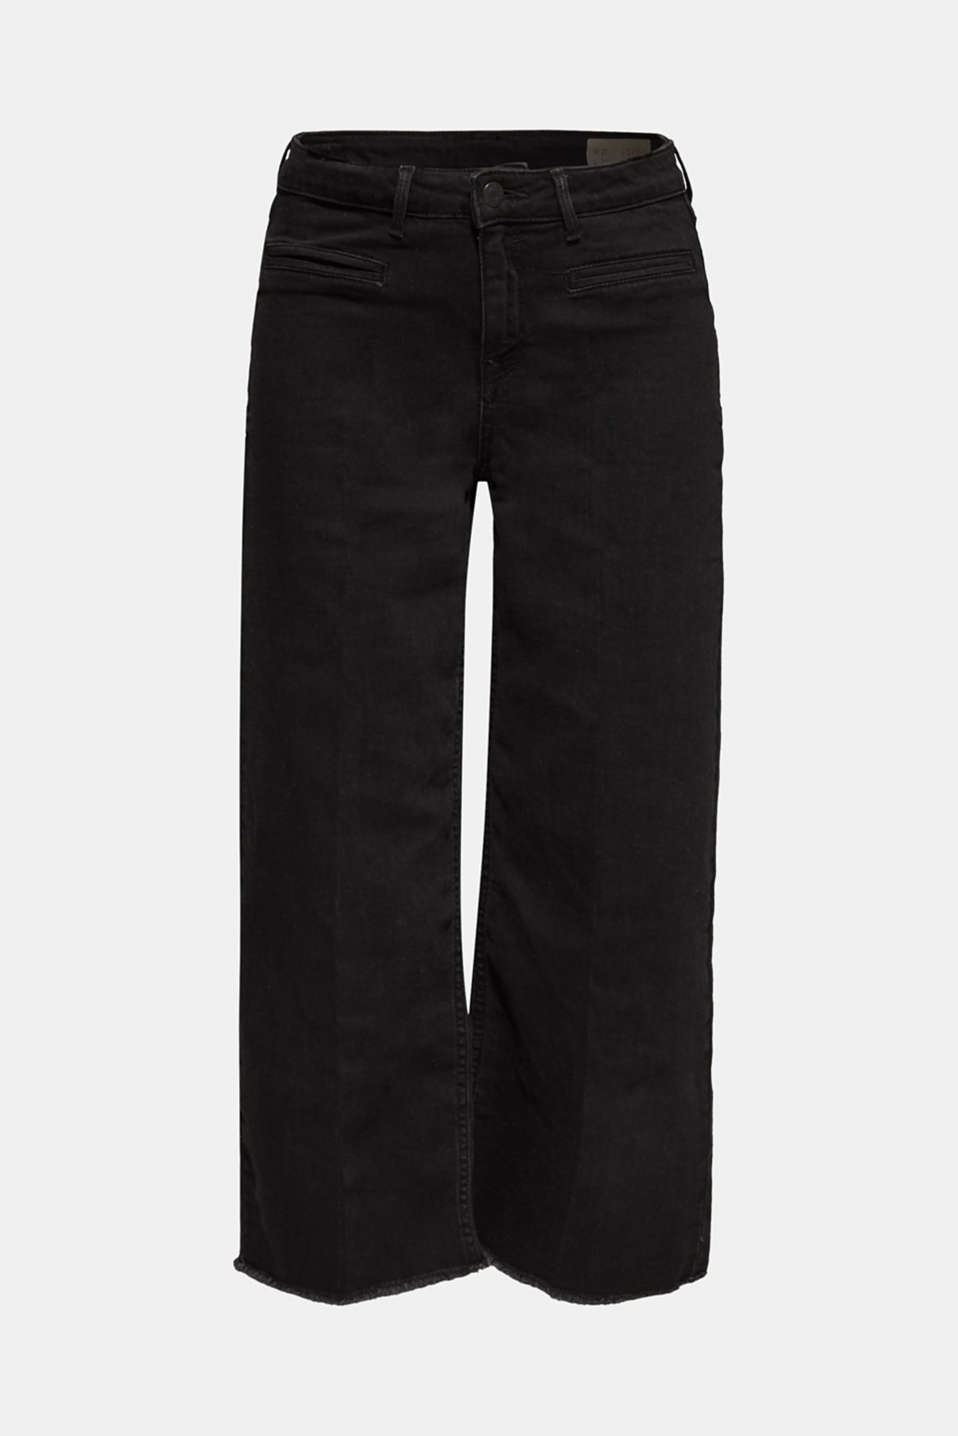 Jean culottes with an open hem, BLACK DARK WASH, detail image number 7